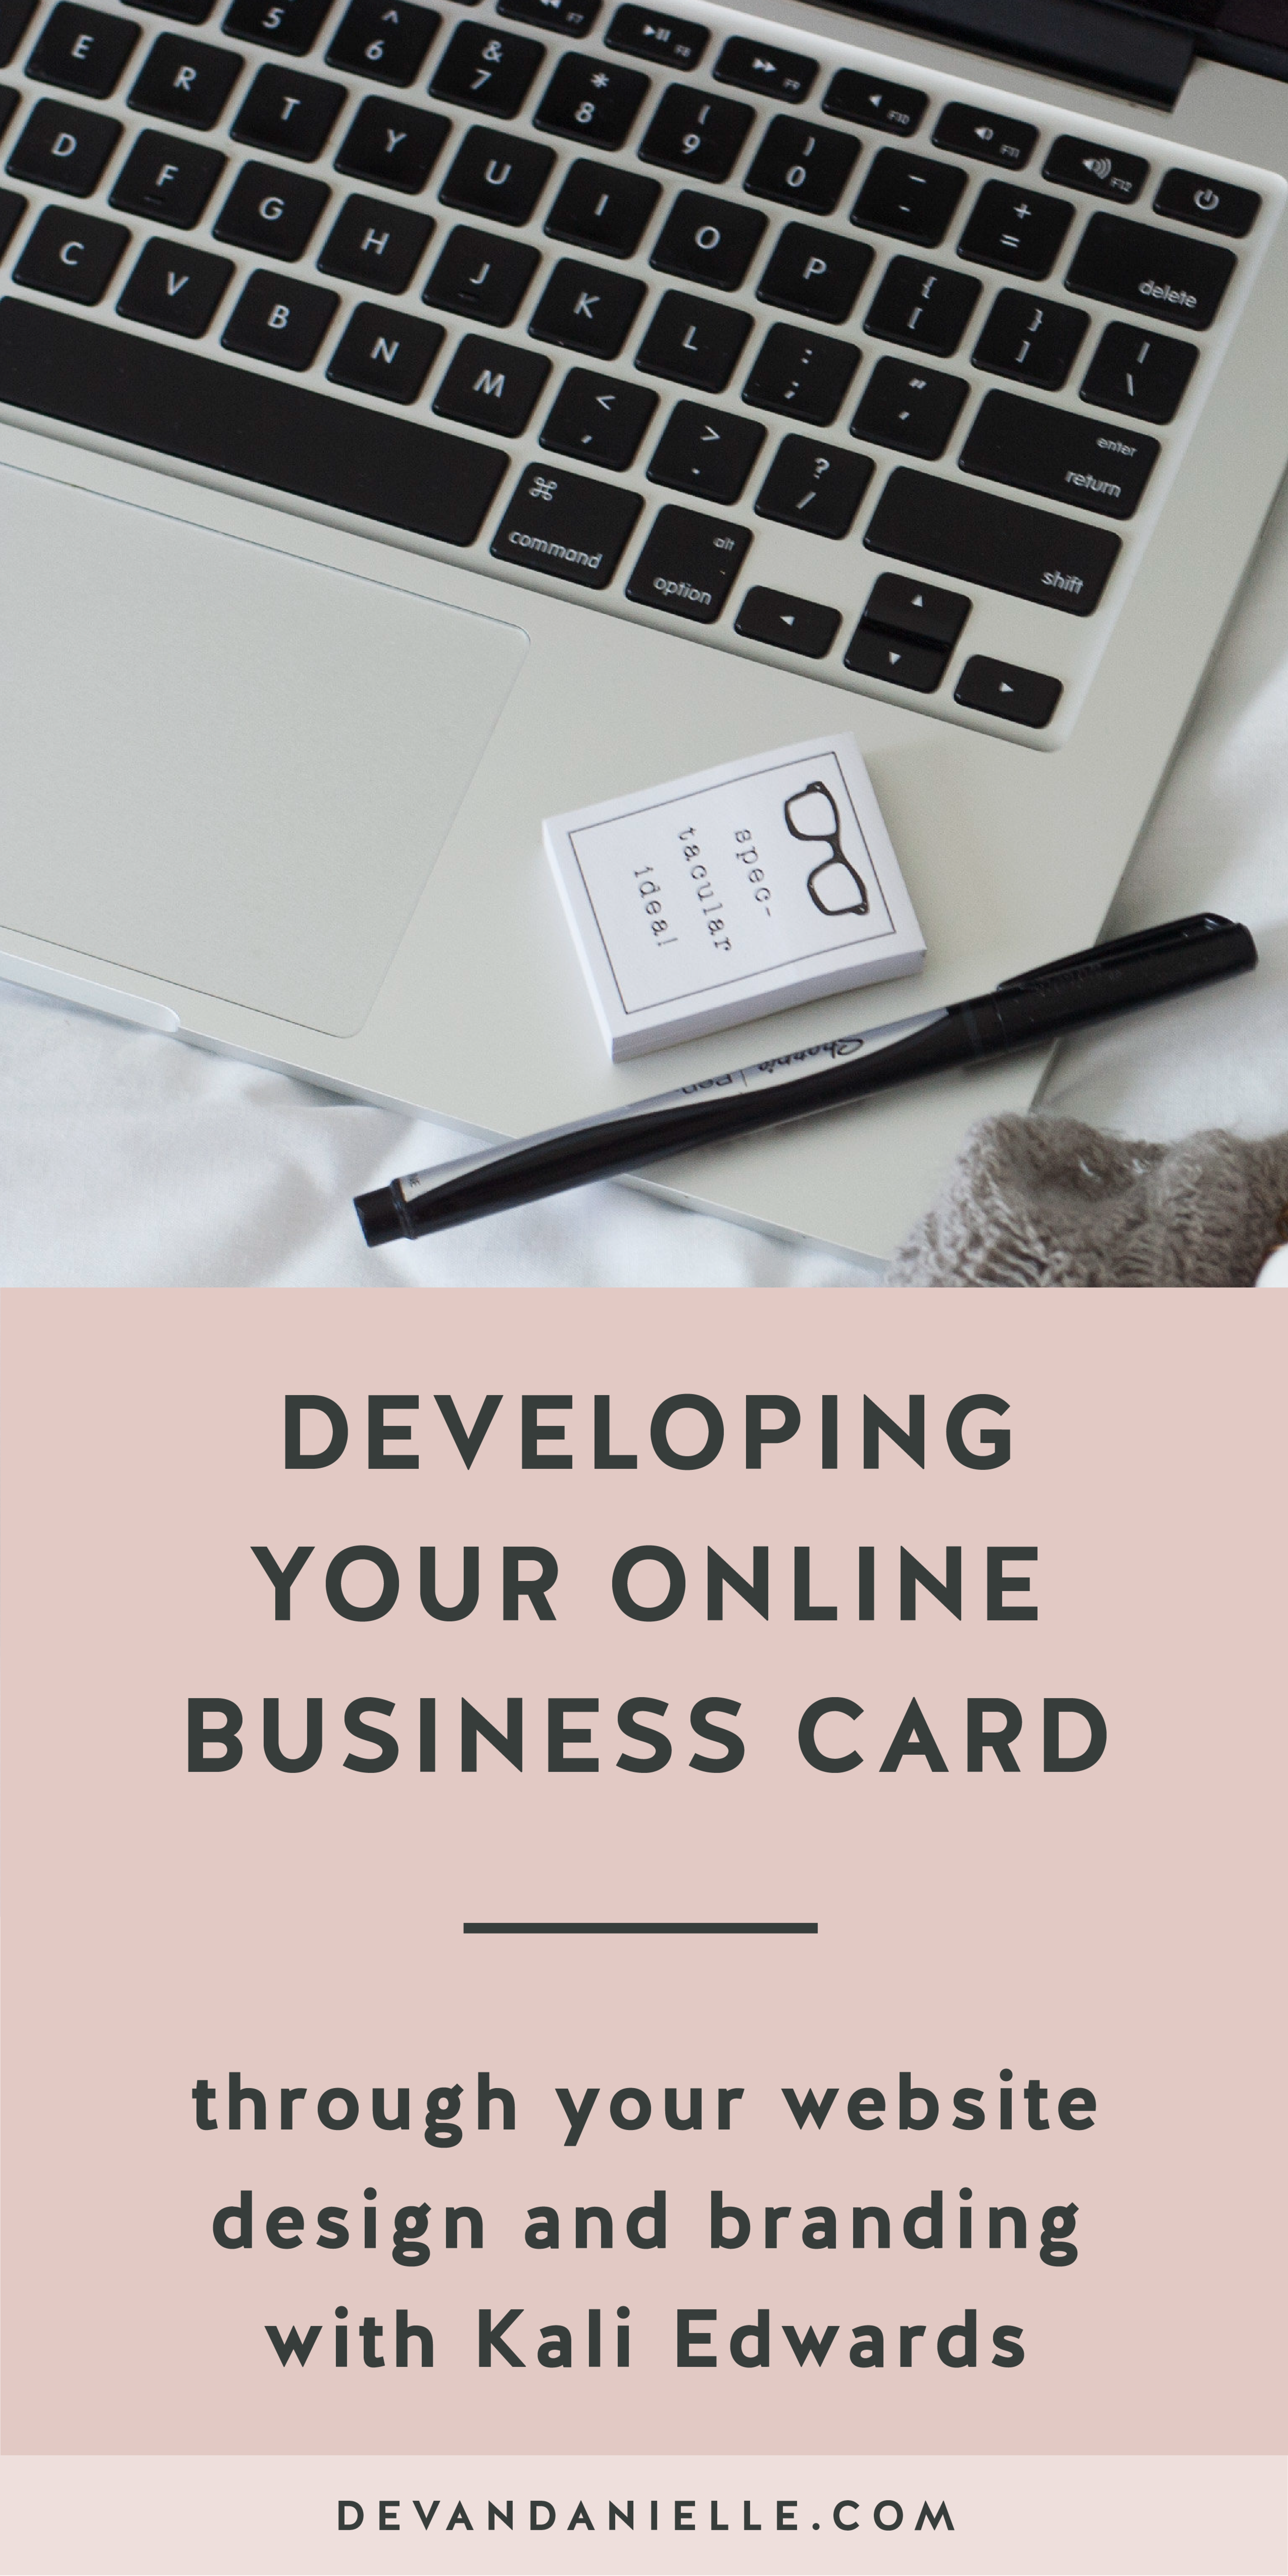 Developing Your Online Business Card